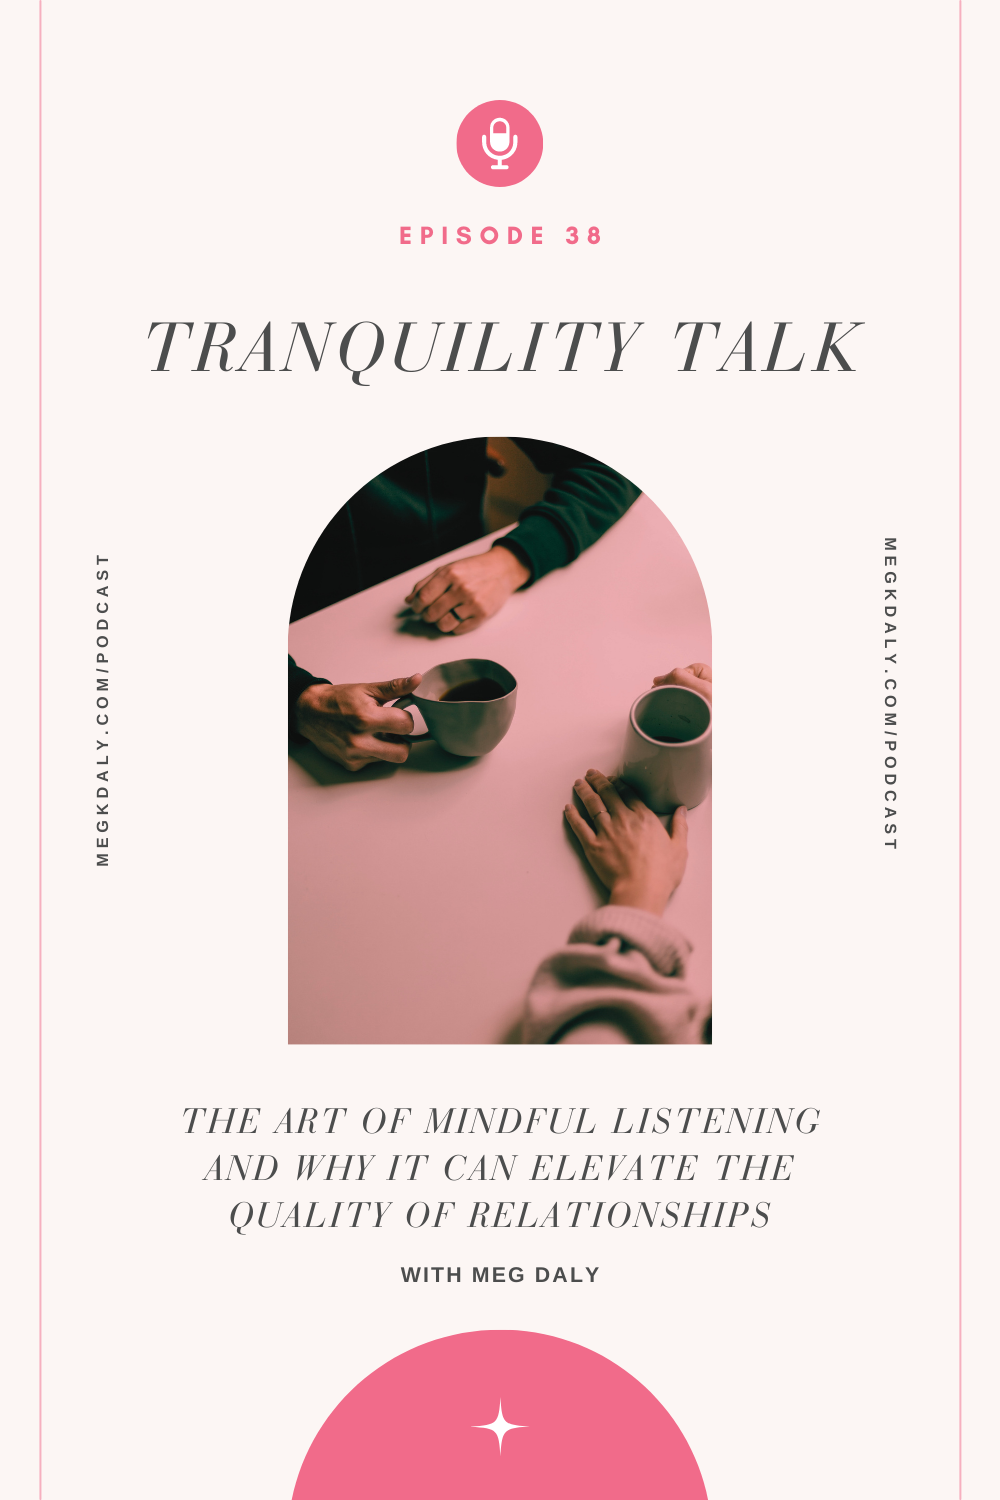 Tranquility Talk | Episode 38: The Art Of Mindful Listening And Why It Can Elevate The Quality Of Relationships